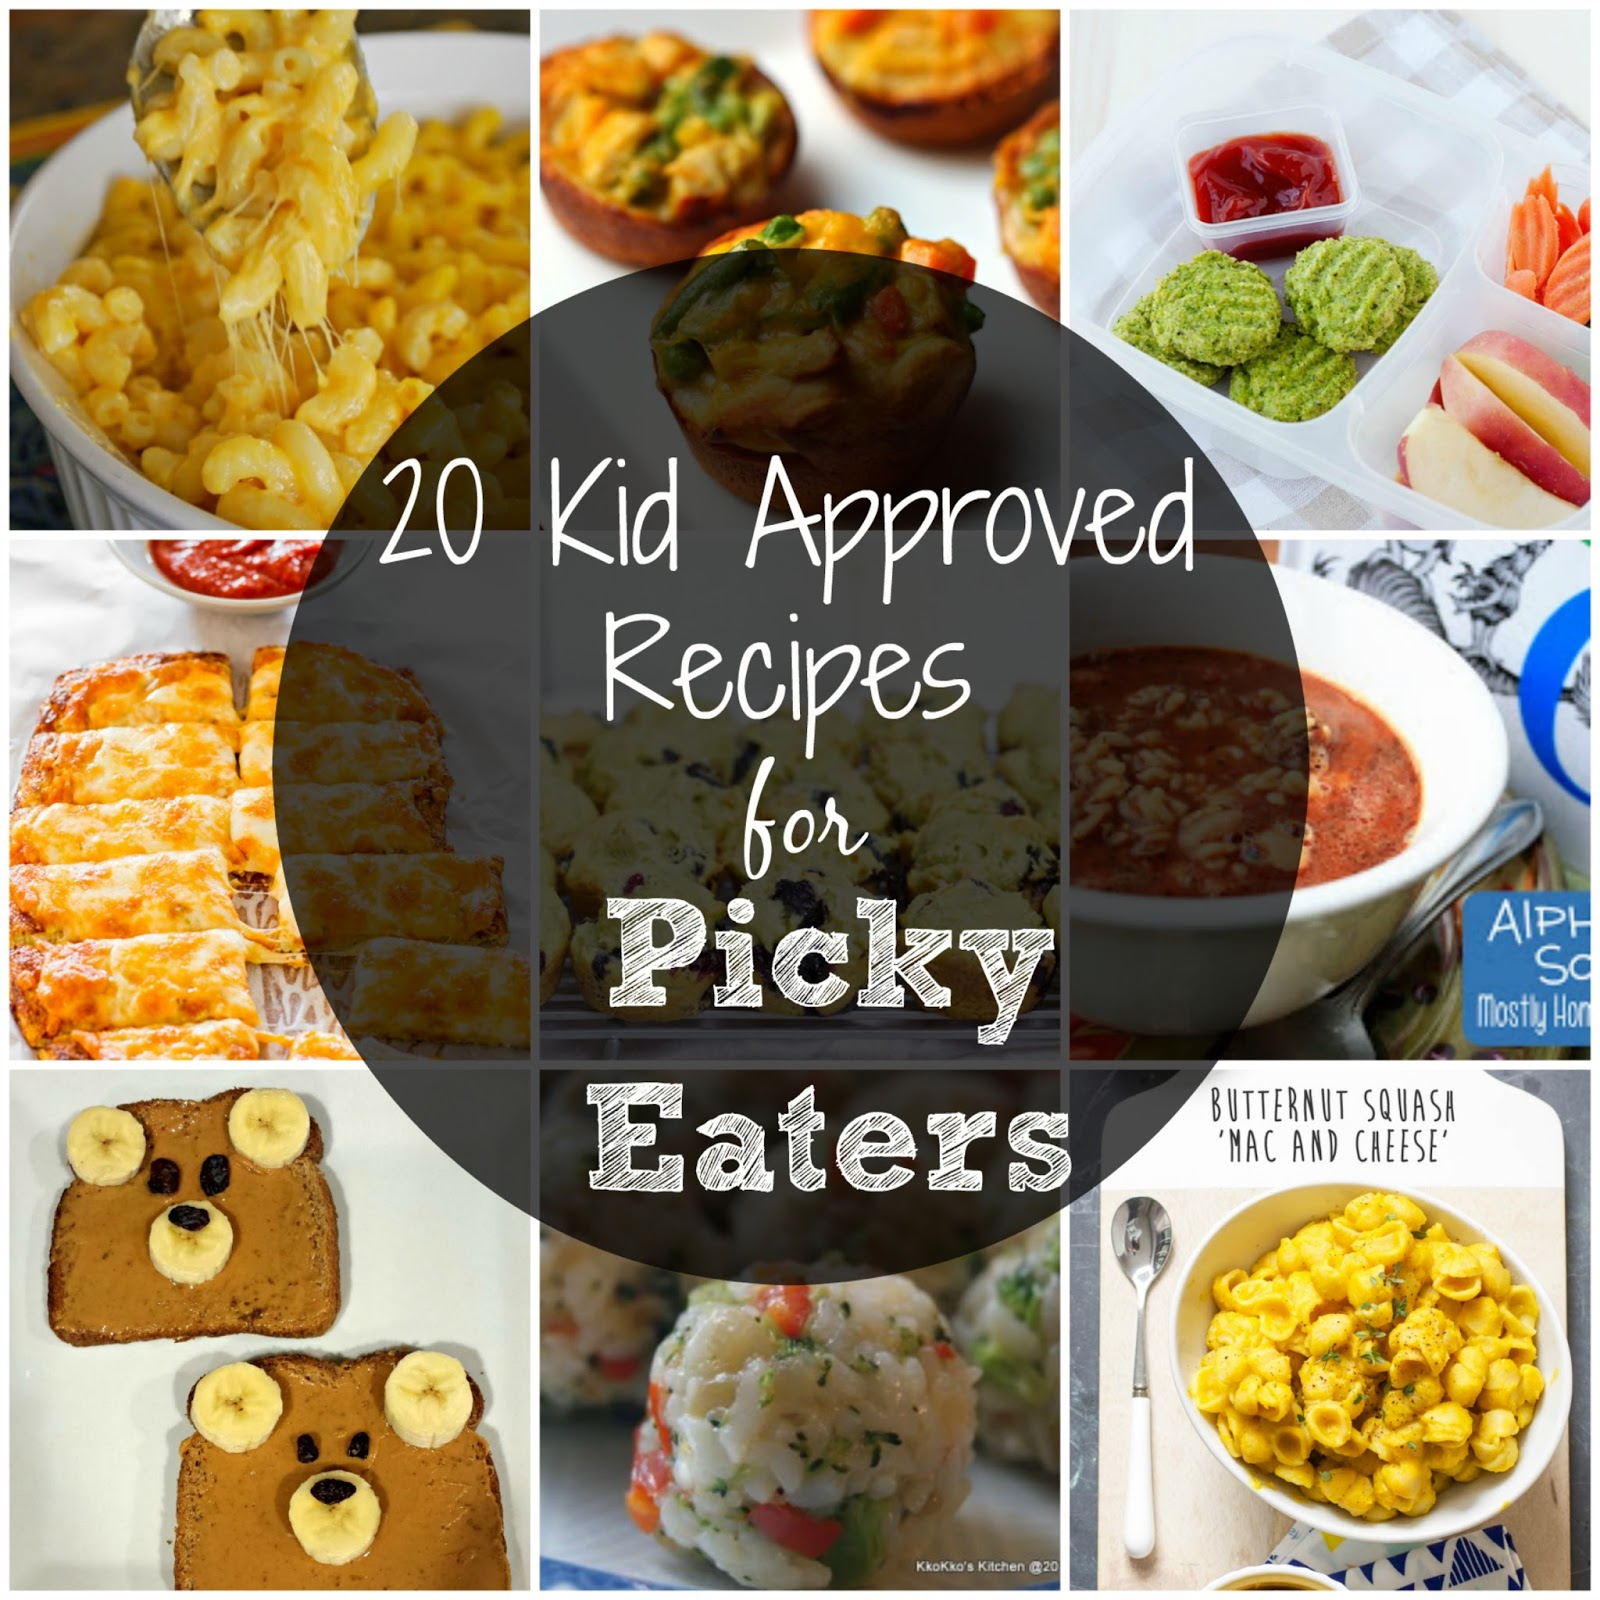 95 food ideas picky eaters 20 lunchbox ideas for the picky eater